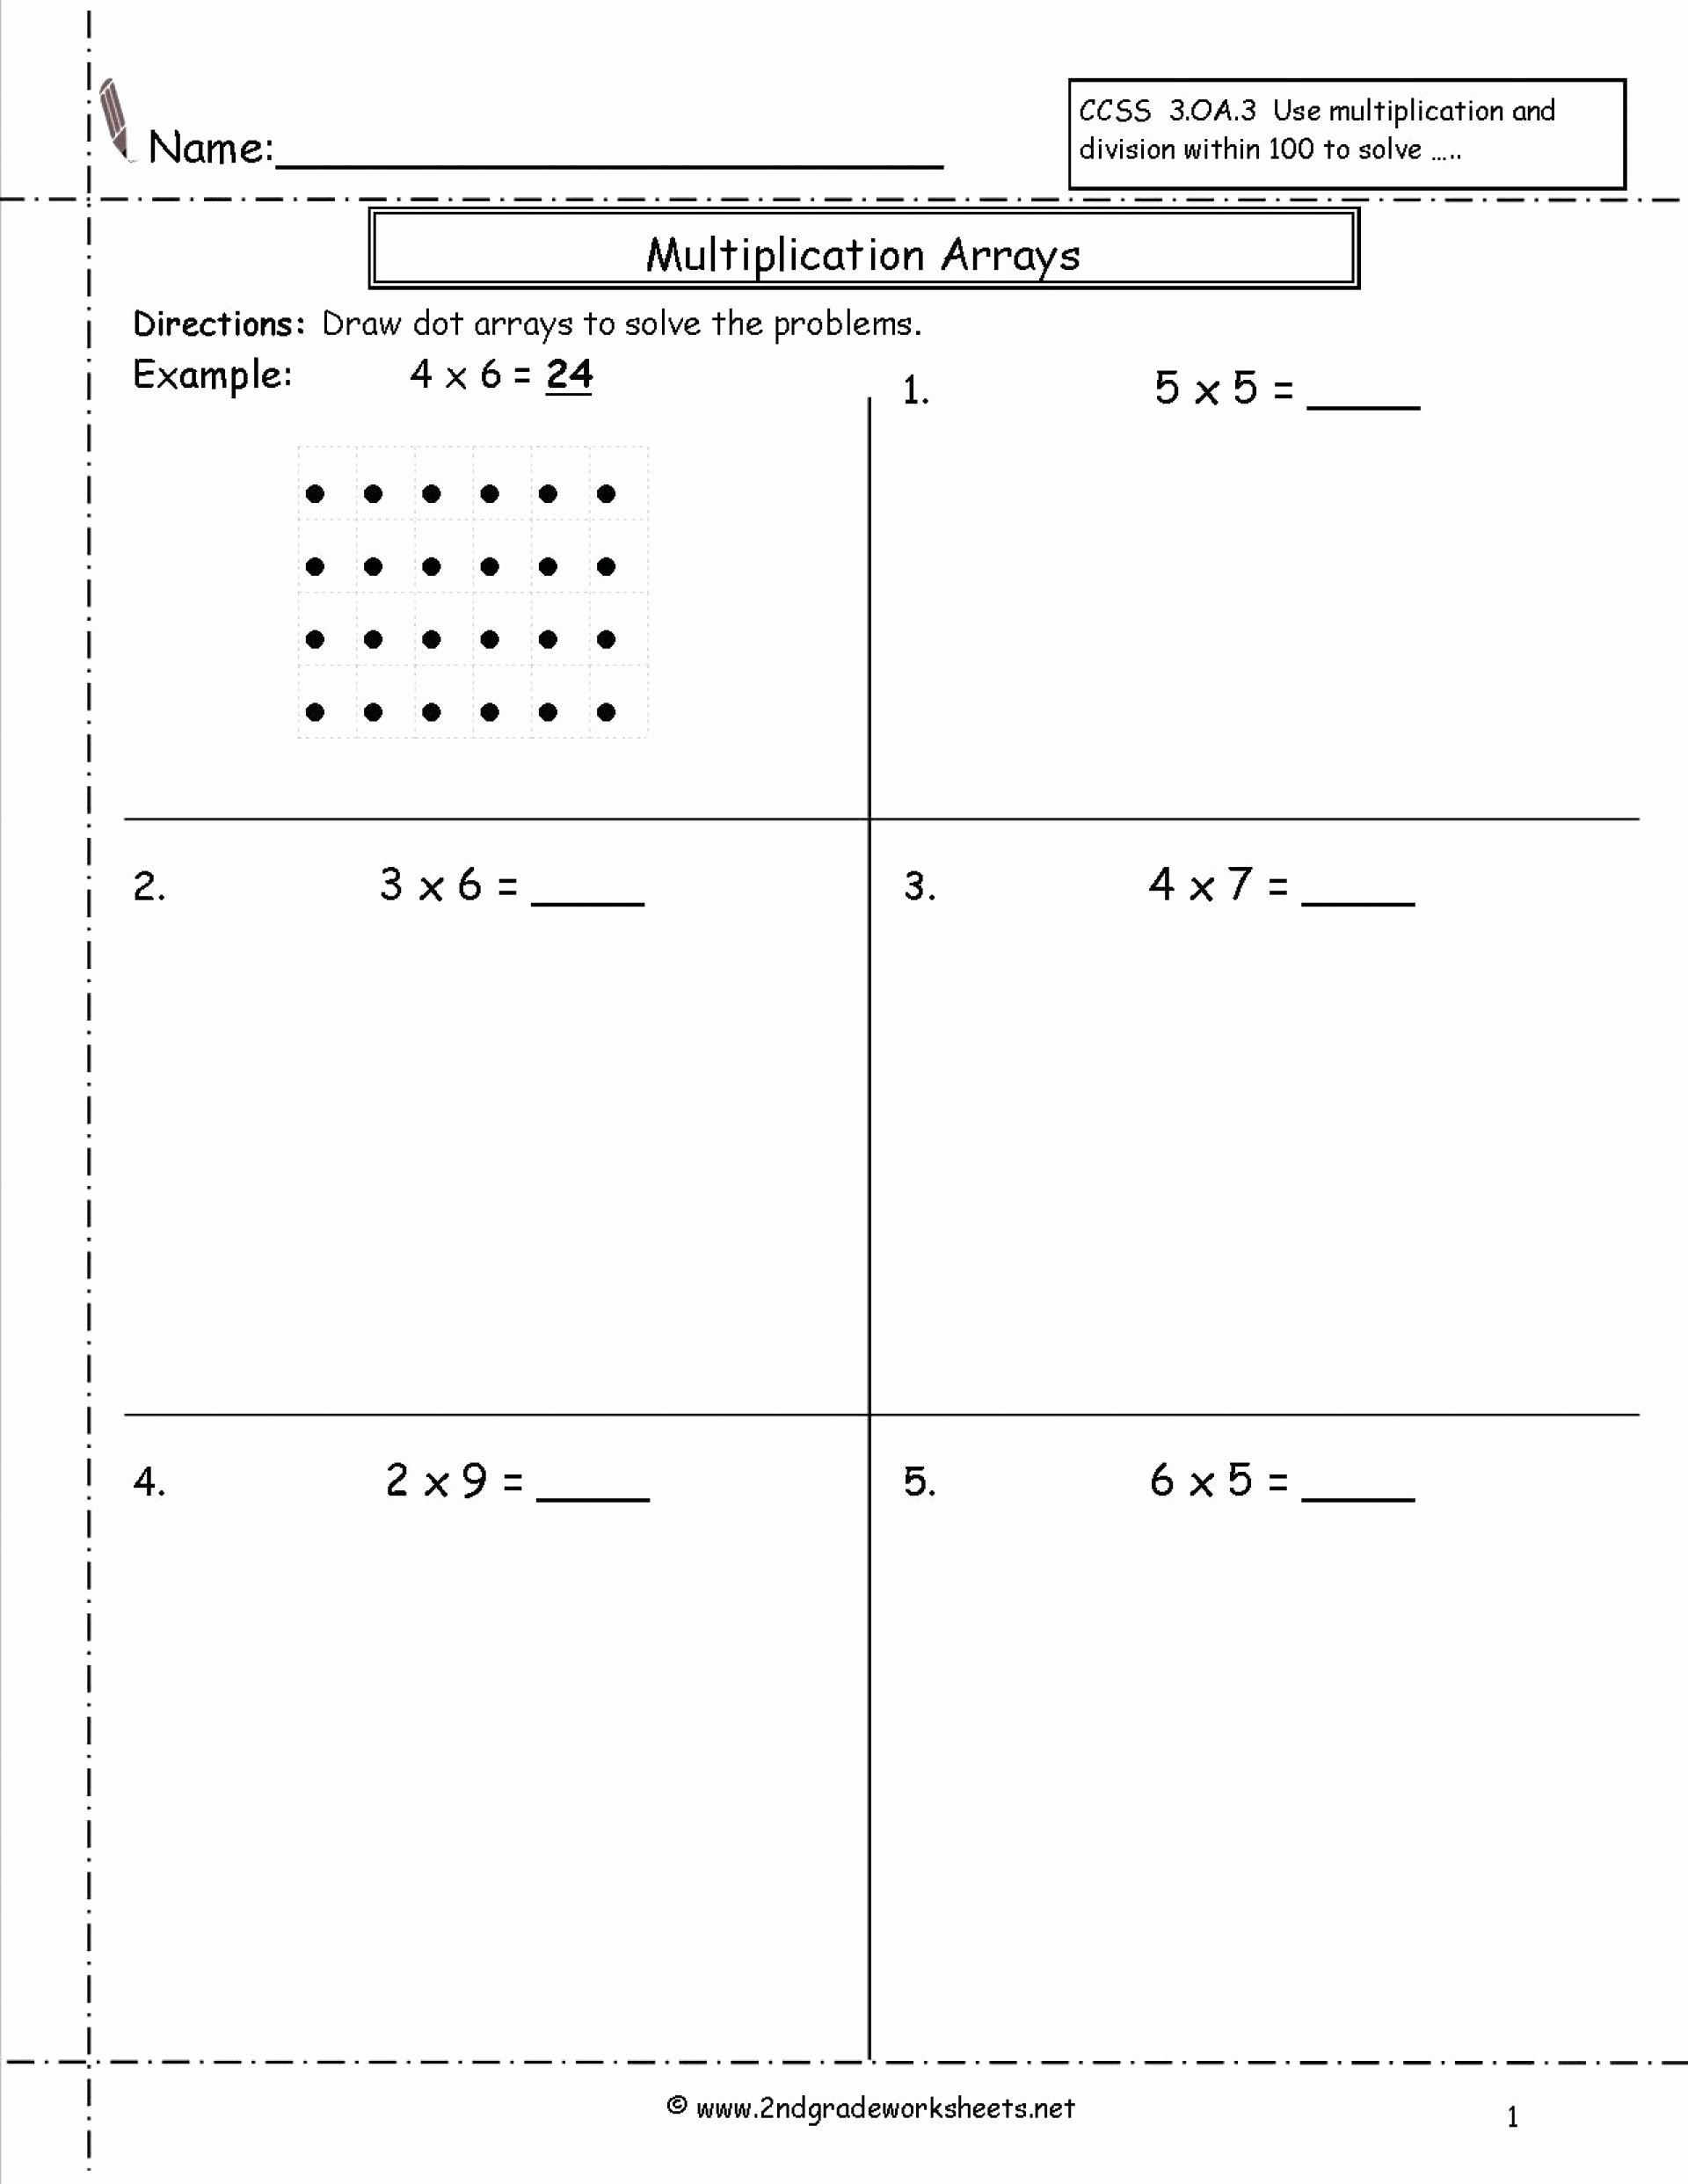 Multiplication Worksheets Using Arrays top Pin On Math Worksheets